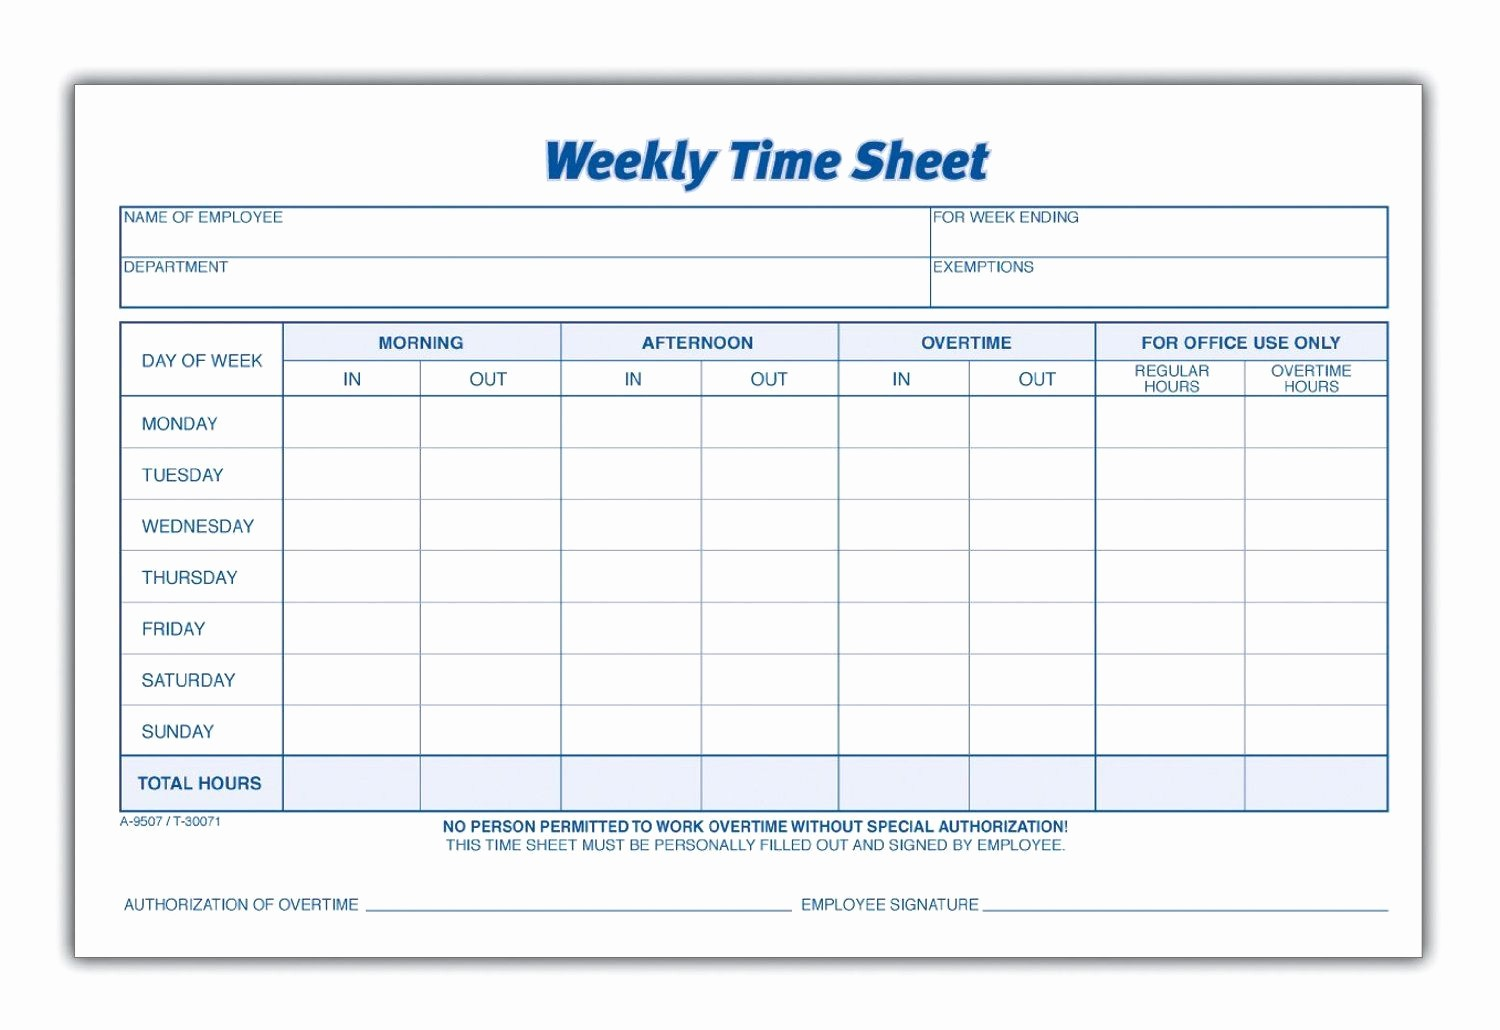 Daily Time Sheets Free Printable Elegant Weekly Employee Time Sheet Projects to Try